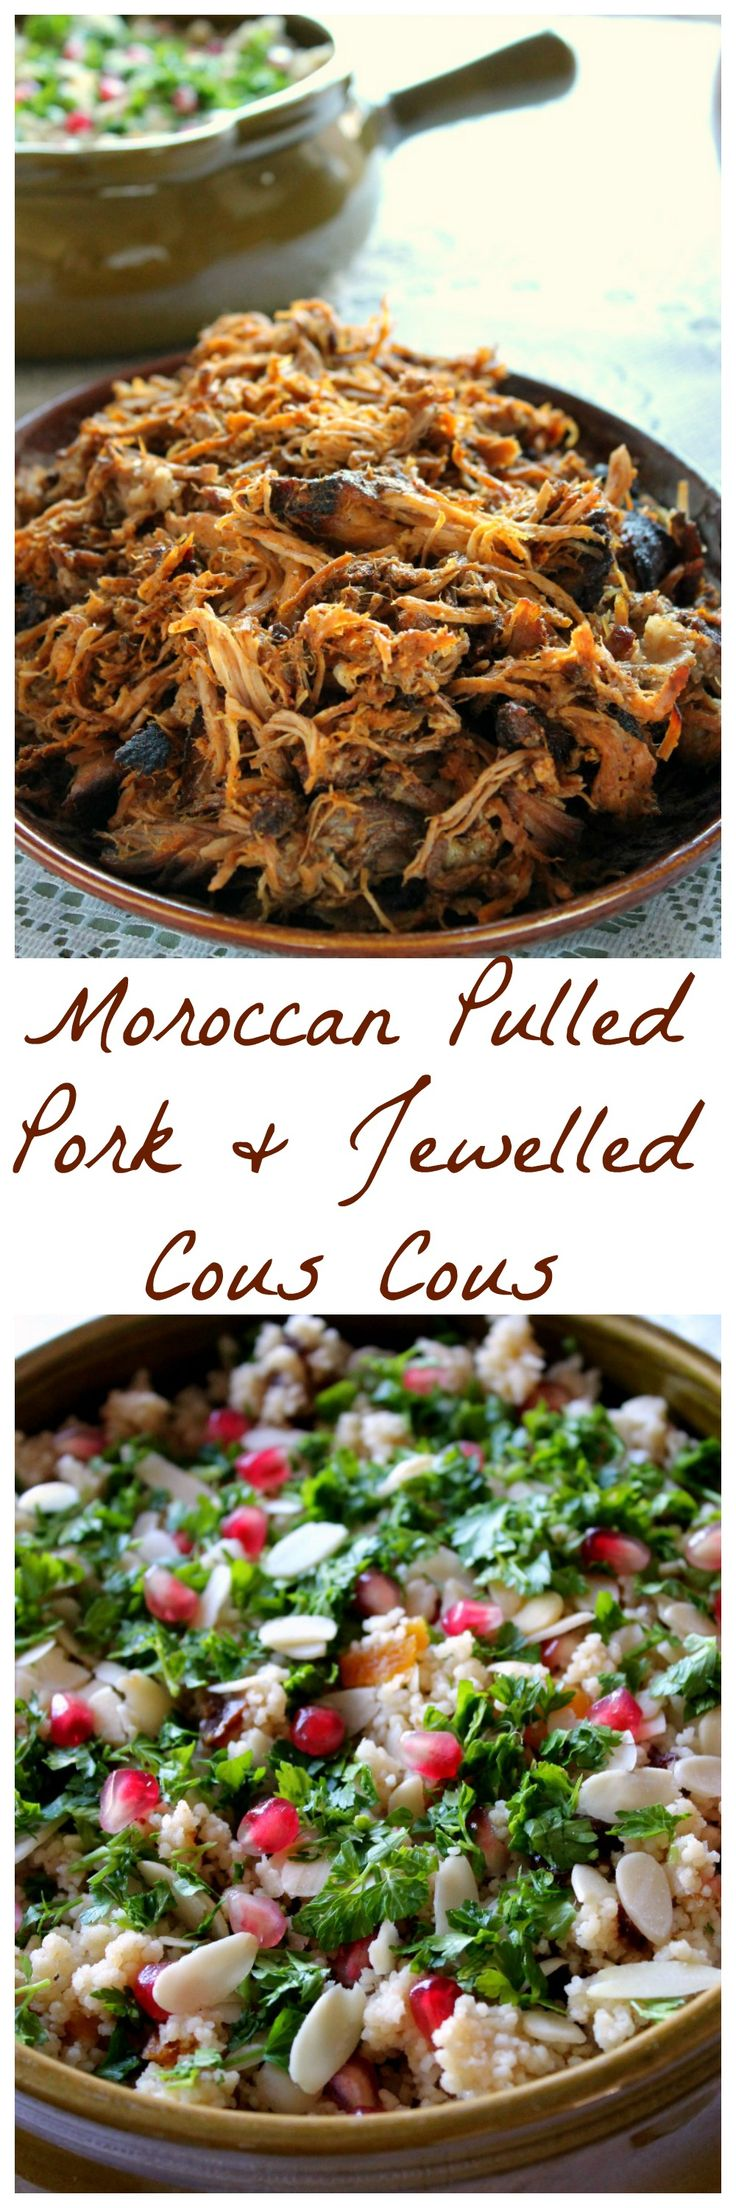 Moroccan pulled pork and jewelled cous cous